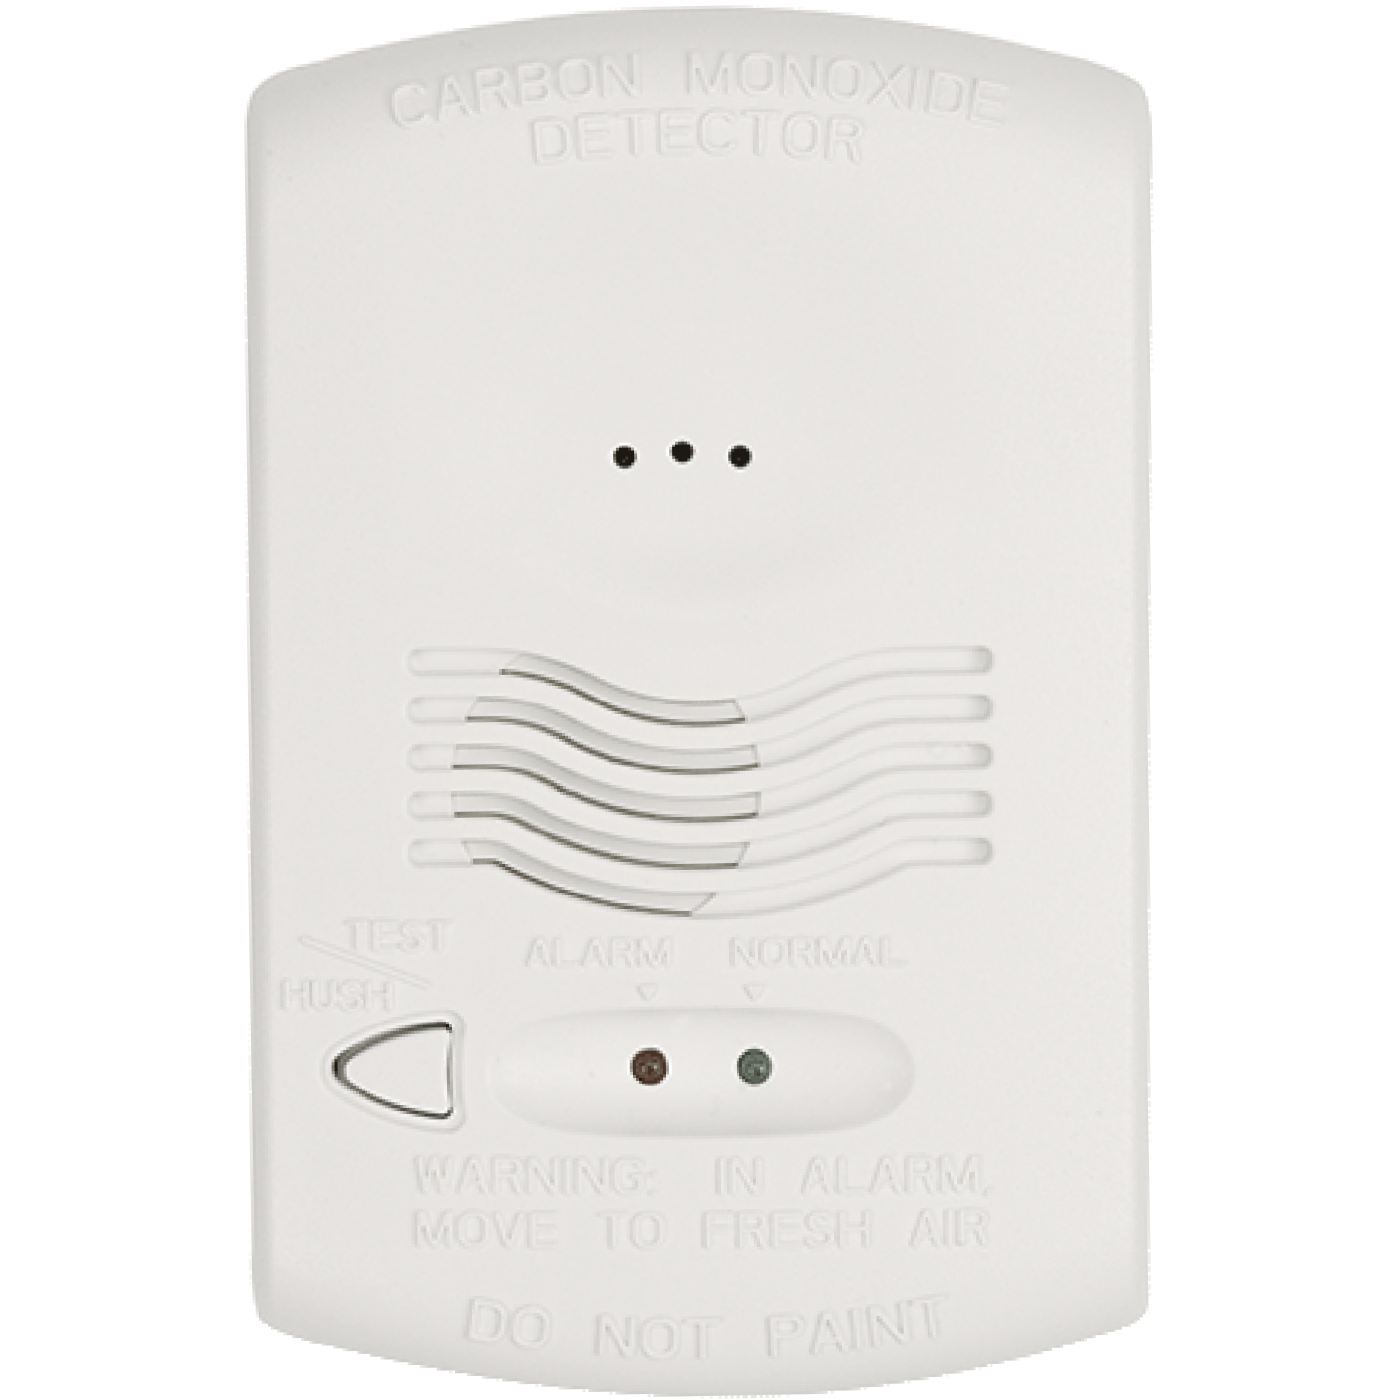 CO1224T - Honeywell System Sensor 4-Hardwired Carbon Monoxide Detector